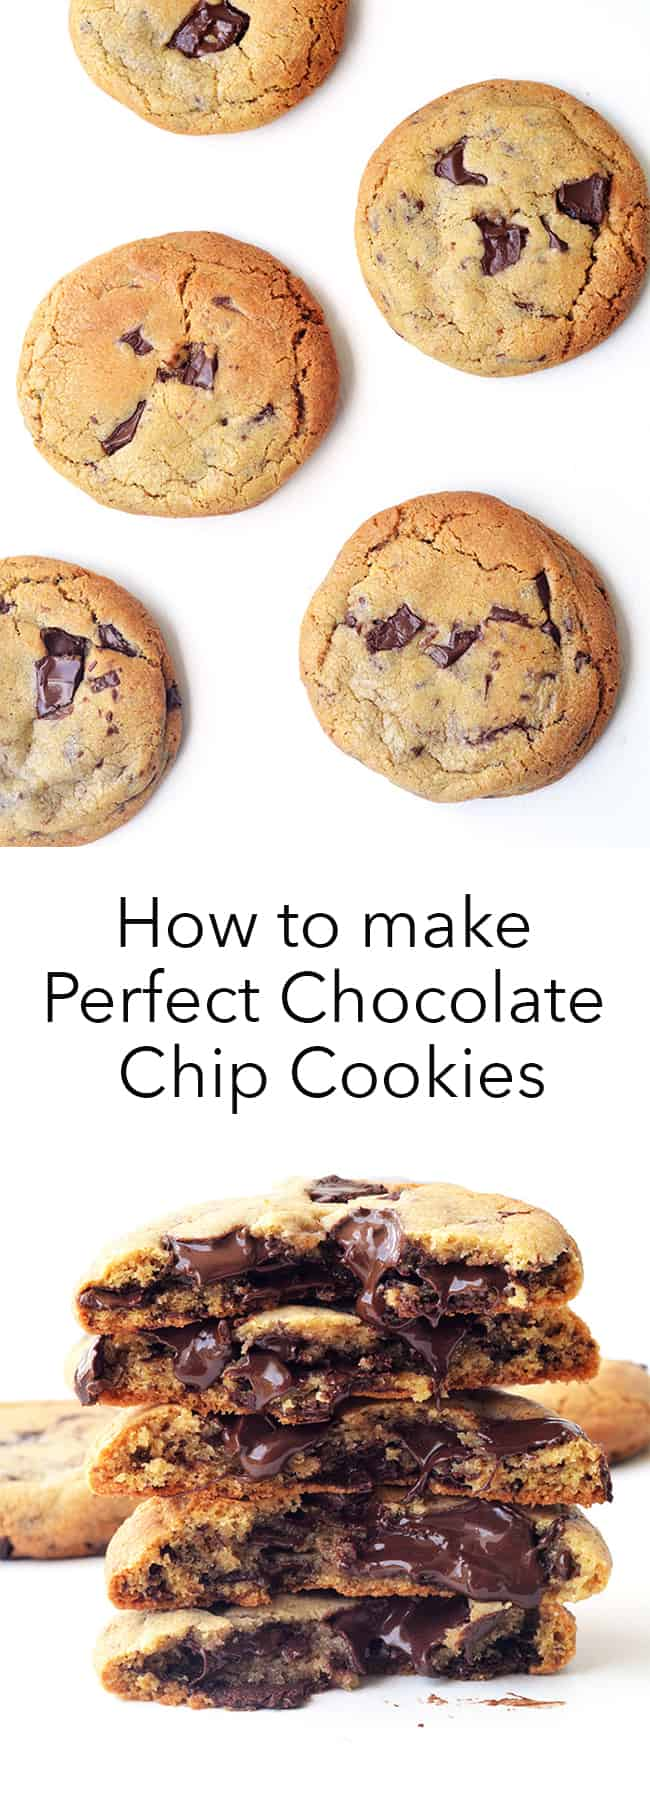 How to make perfect chocolate chip cookies | Sweetest Menu